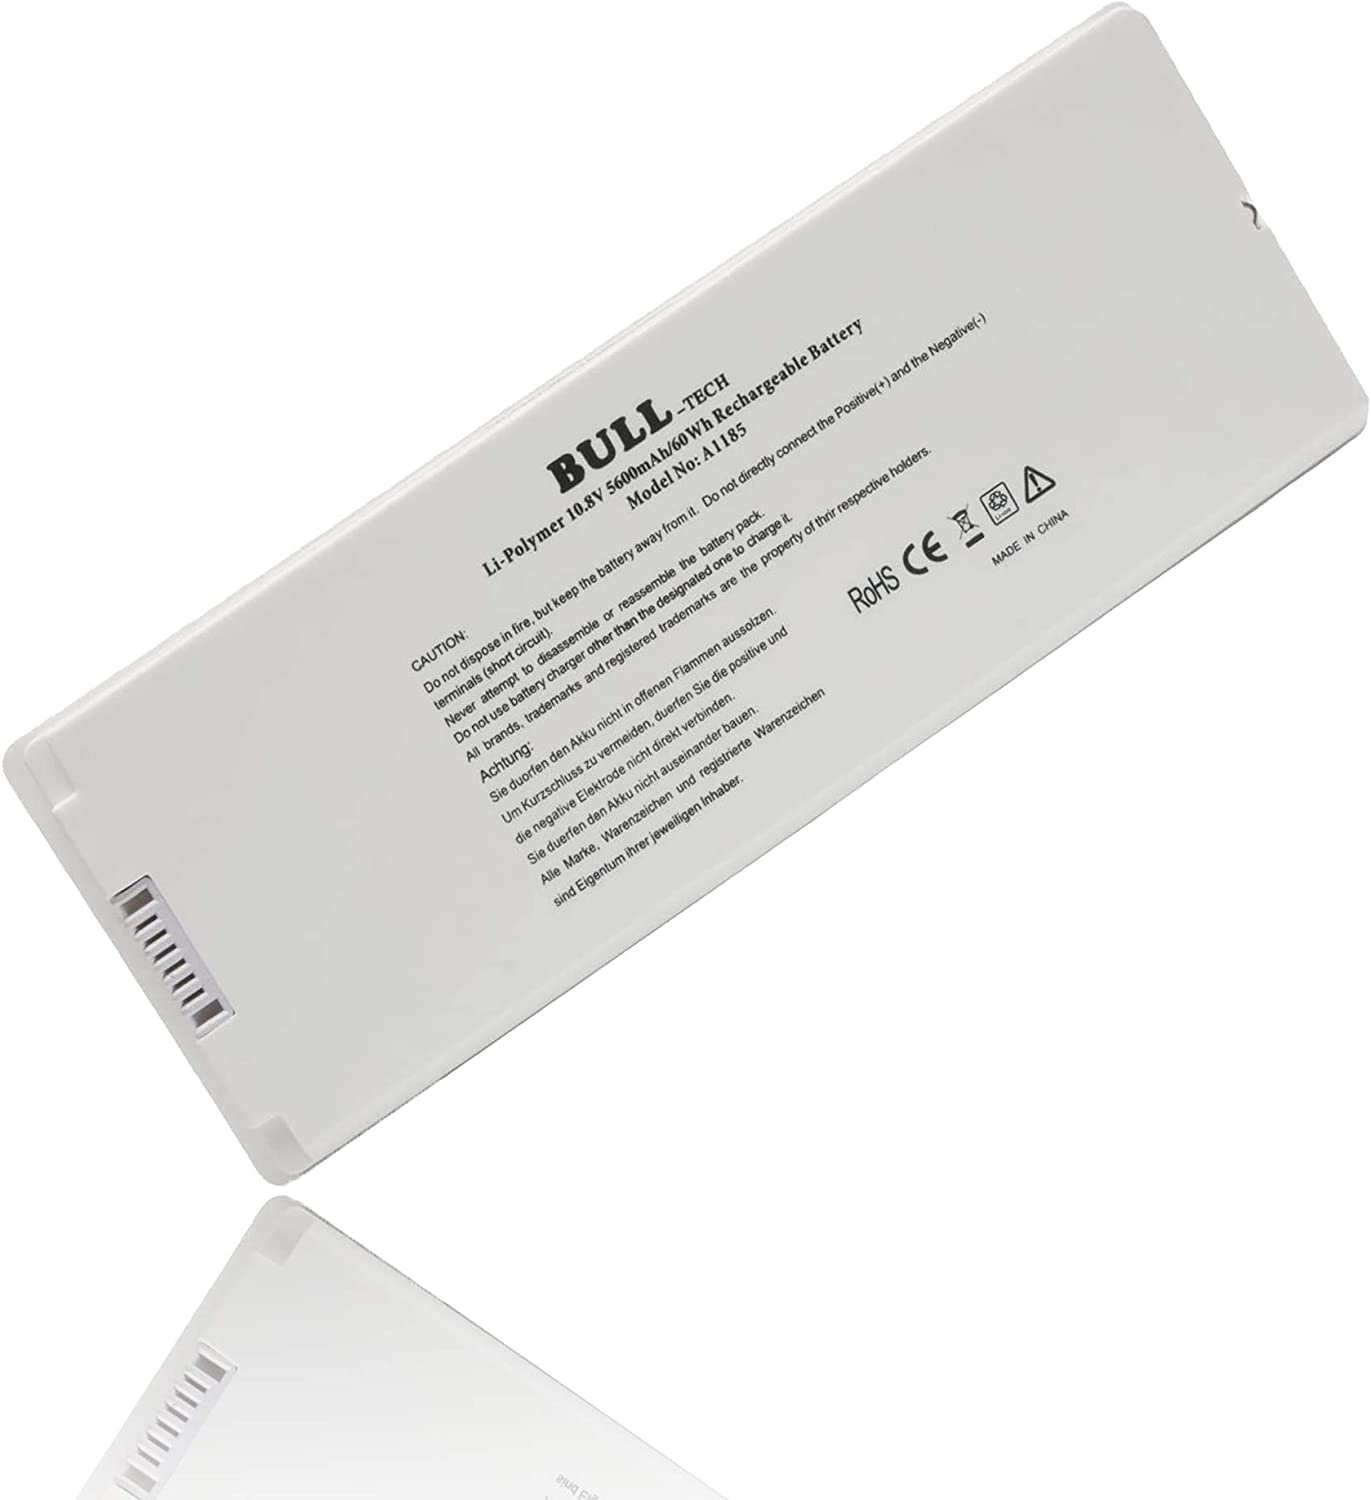 "A1185 A1181 MA561 MA561FE/A MA561G/A MA561J/A New Laptop Battery for Apple 13"" MacBook (Mid. / Late 2006, Mid. / Late 2007, Early/Late 2008, Early/Mid. 2009)"